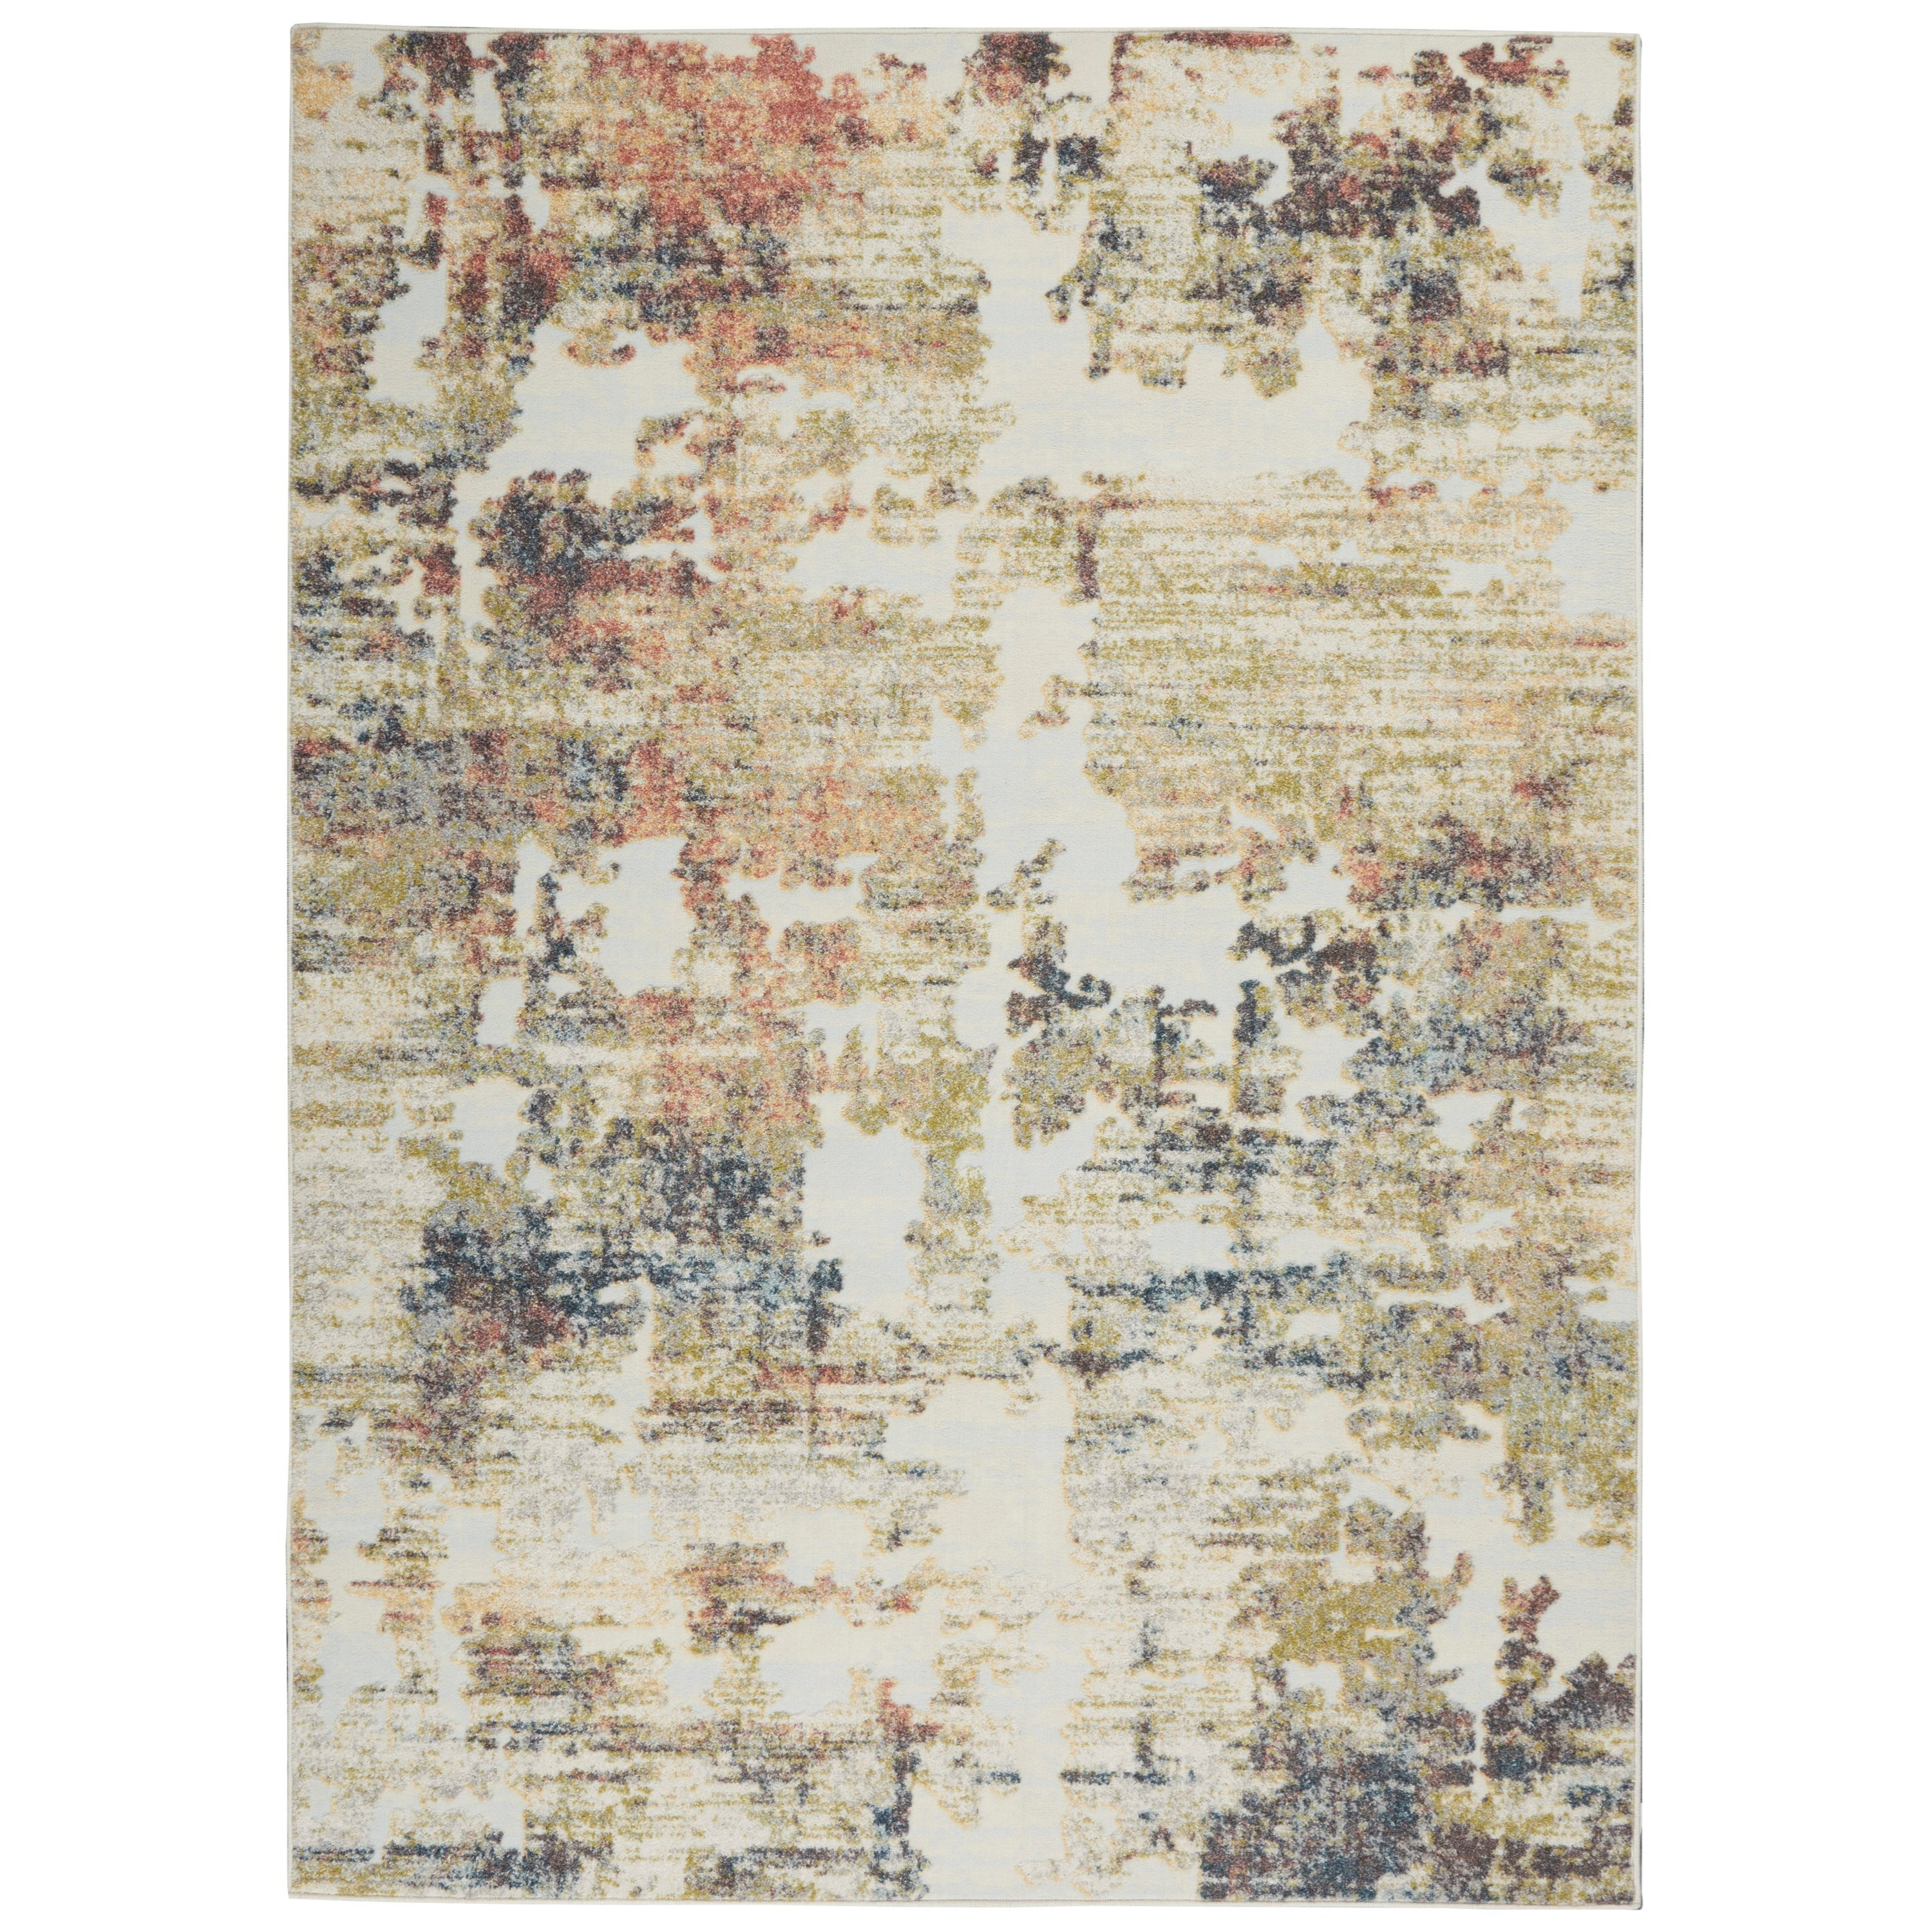 Trance 2020 5' x 7' Rug by Nourison at Home Collections Furniture